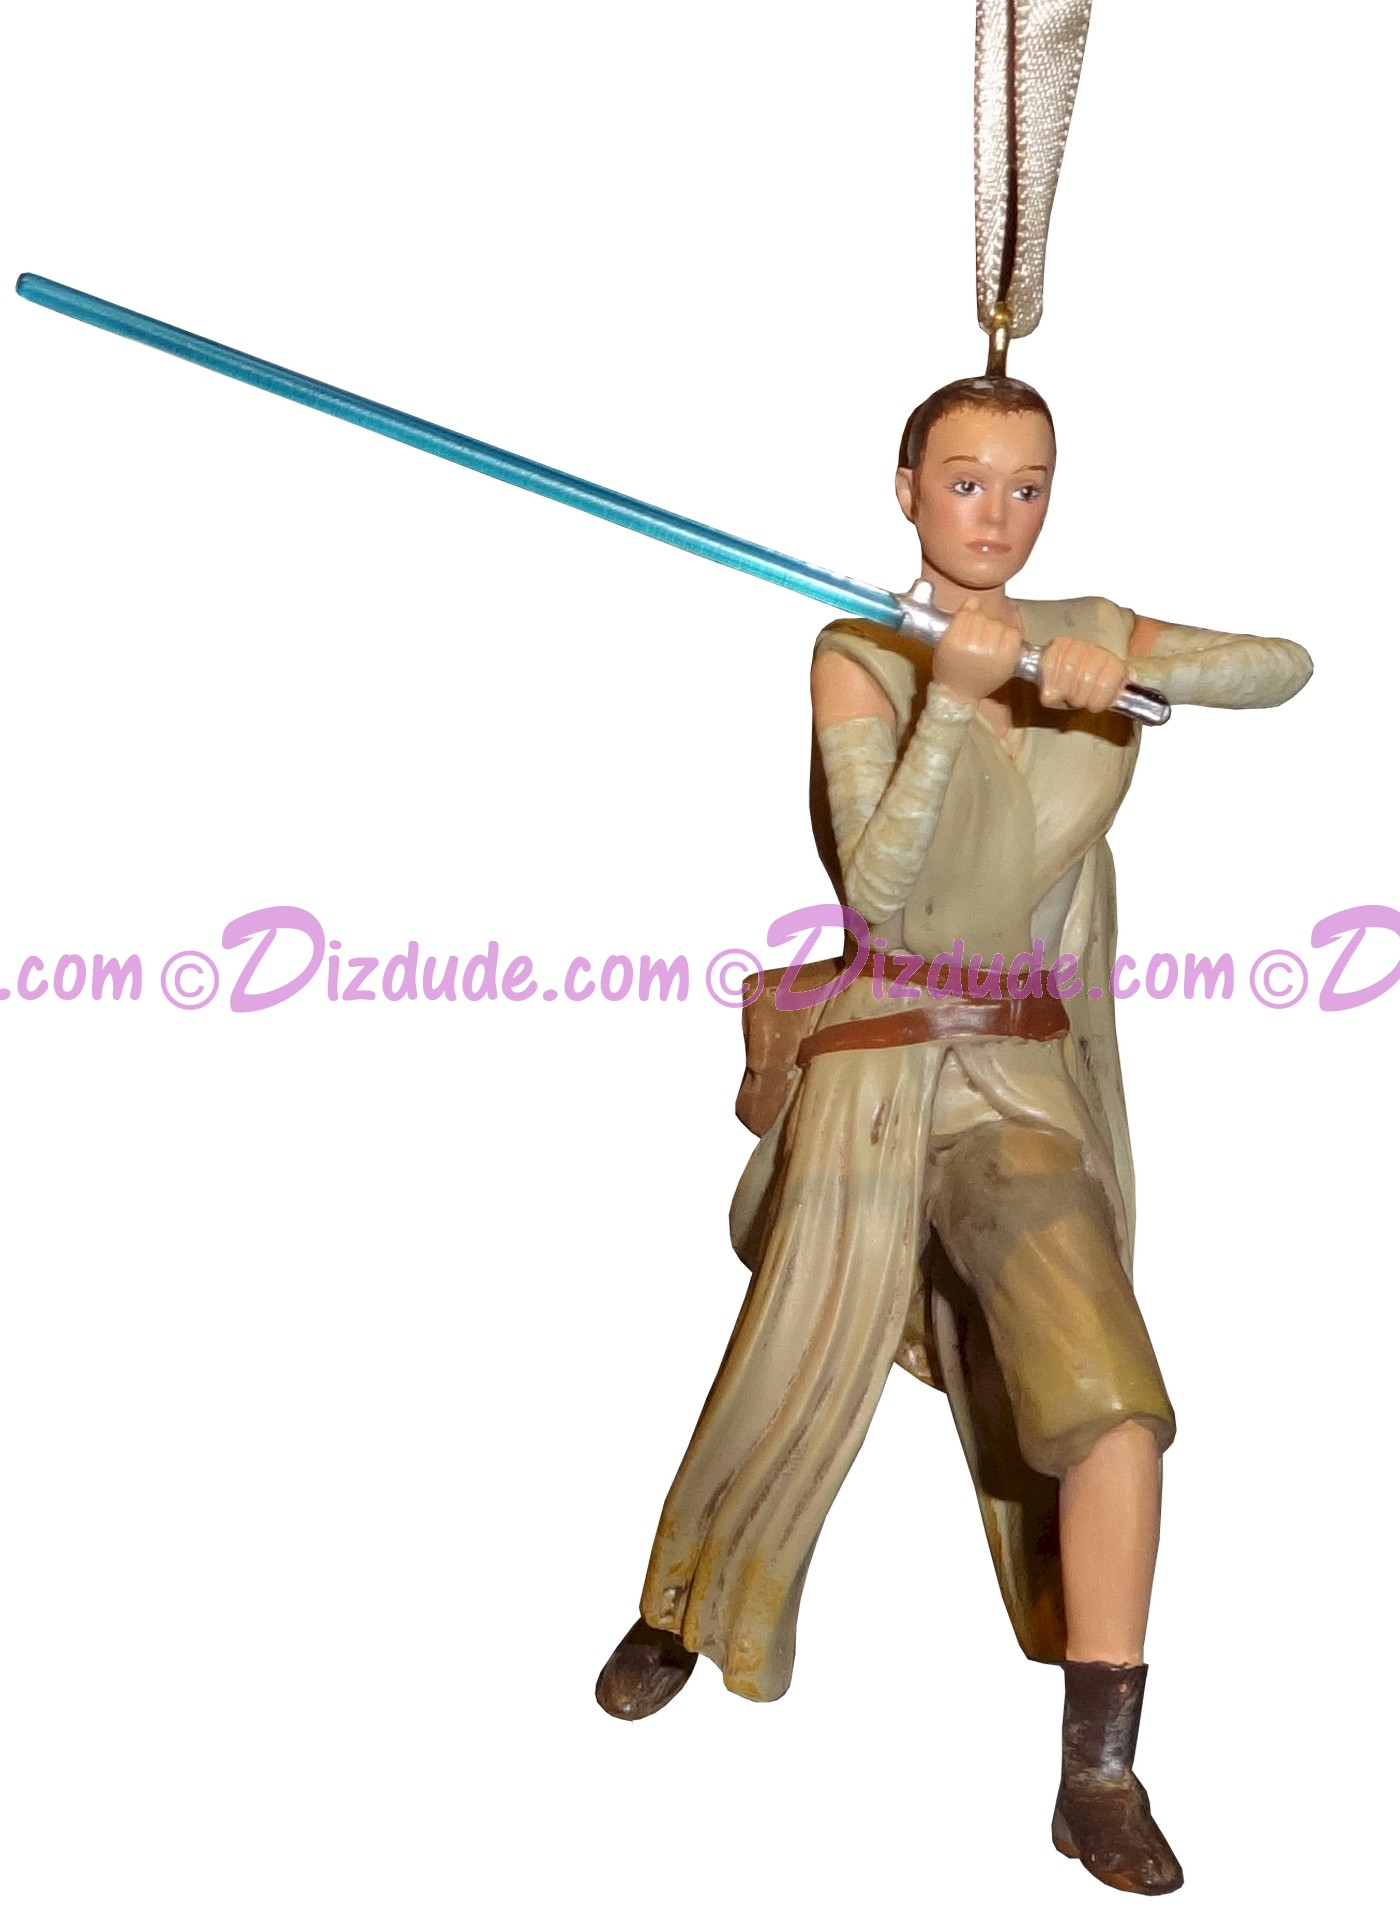 Rey 3D Christmas Ornament - Disney Star Wars: The Force Awakens © Dizdude.com